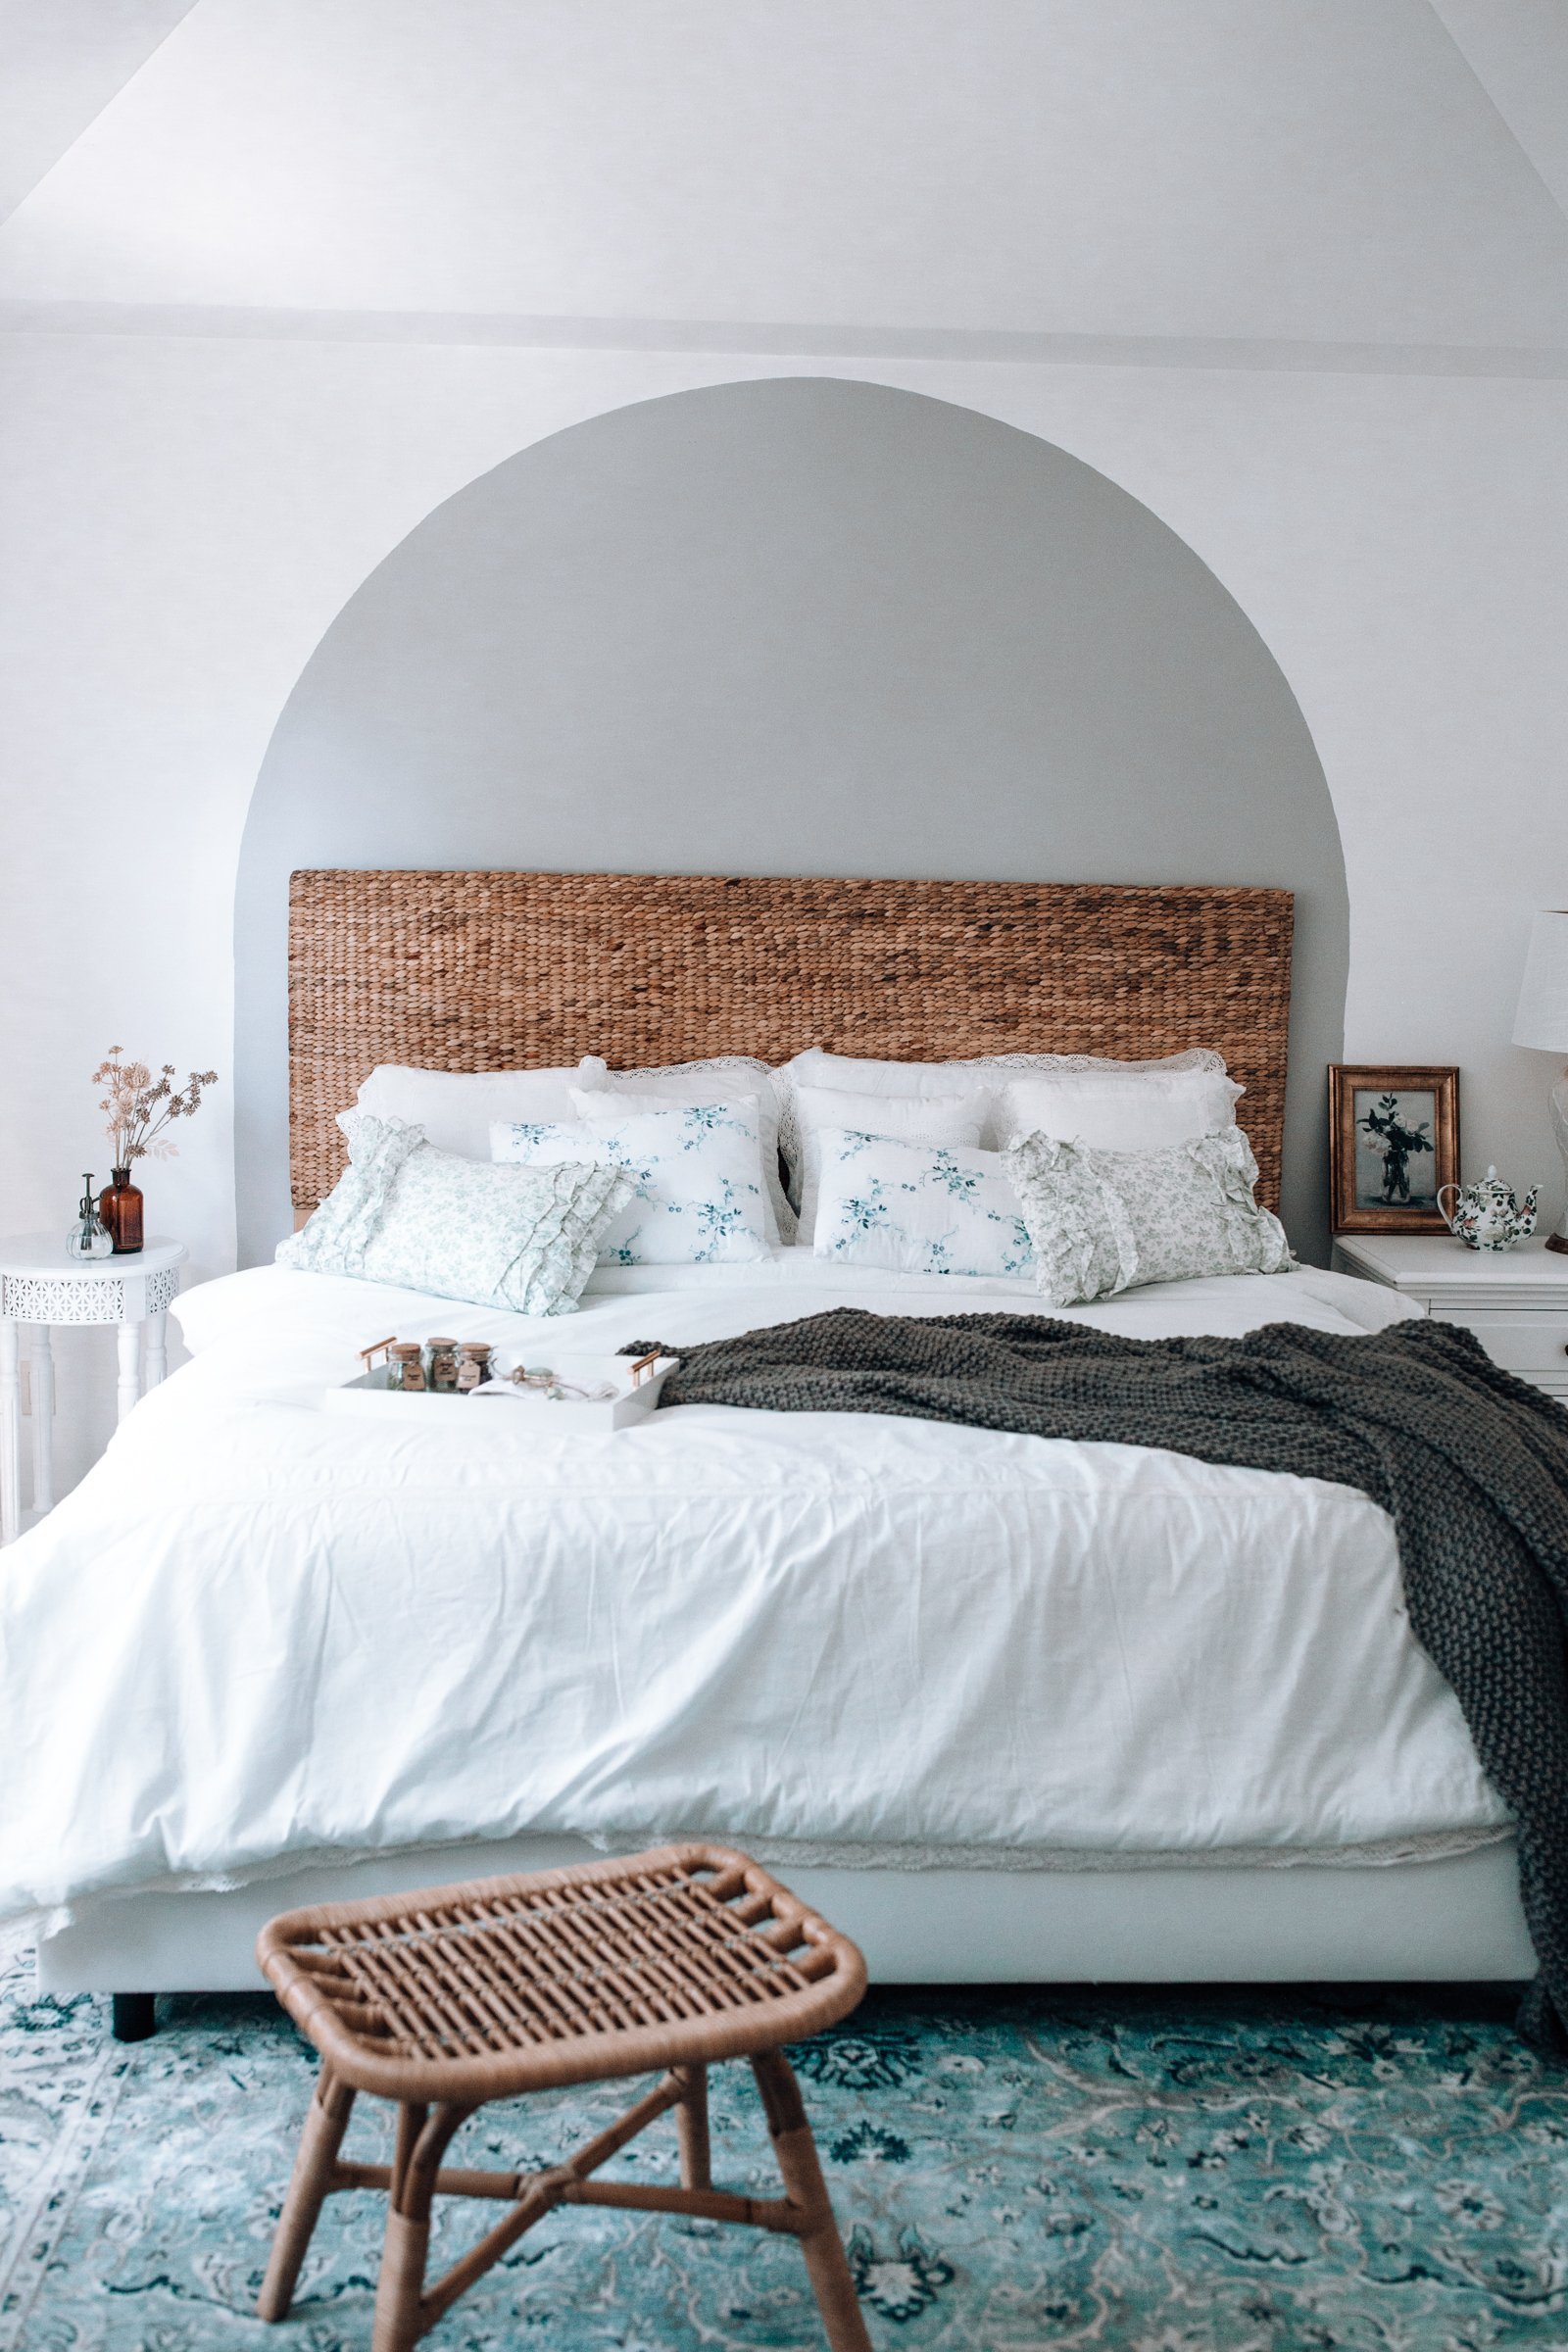 Wall Painting Ideas Wall Painting Ideas For Bedroom Happily Inspired